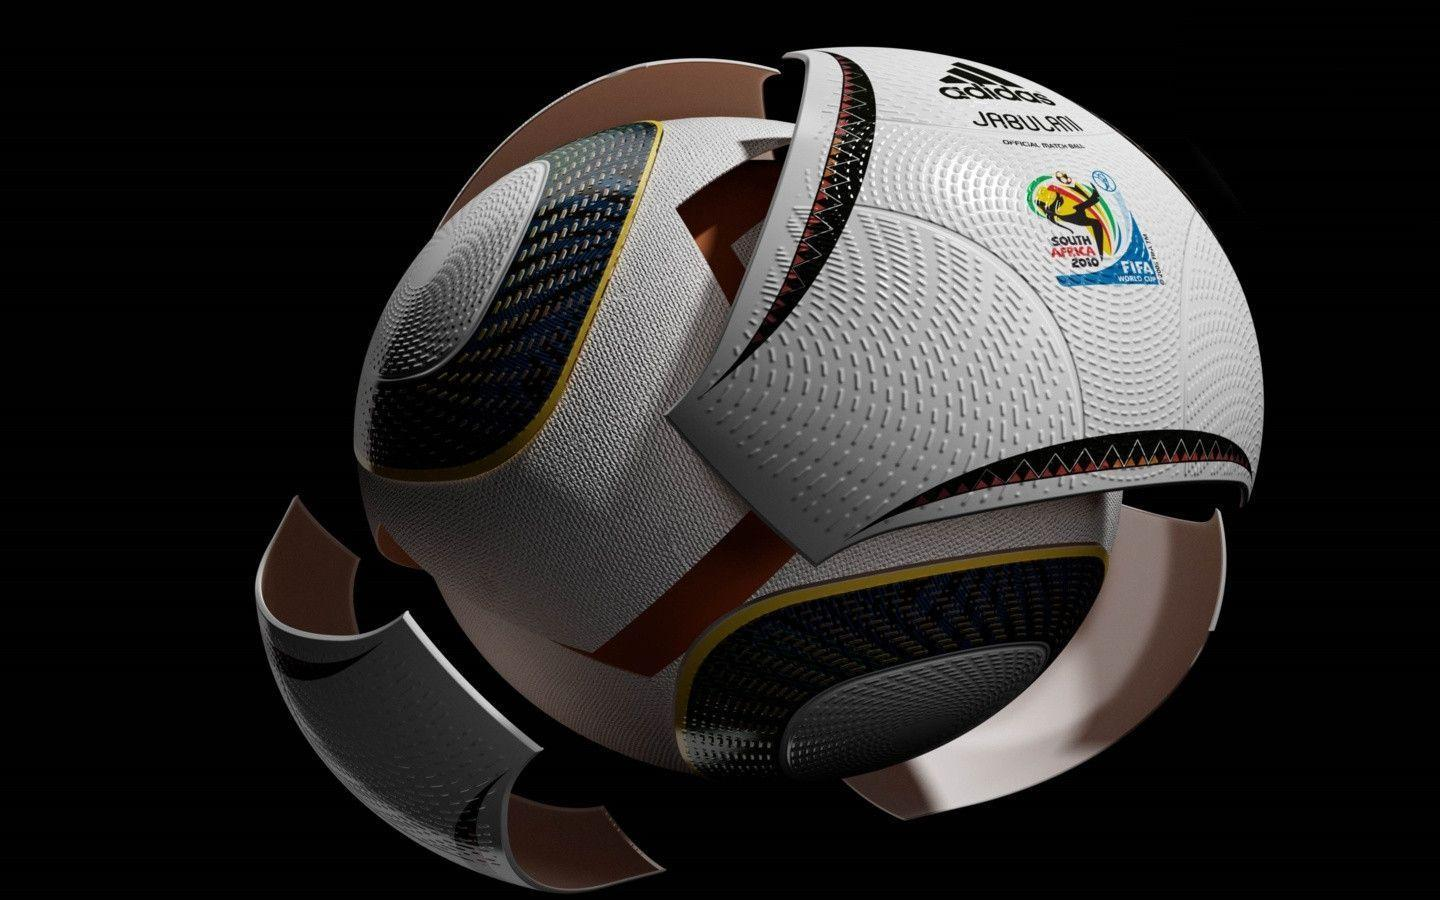 Soccer Ball Wallpaper: Soccer Ball Wallpapers